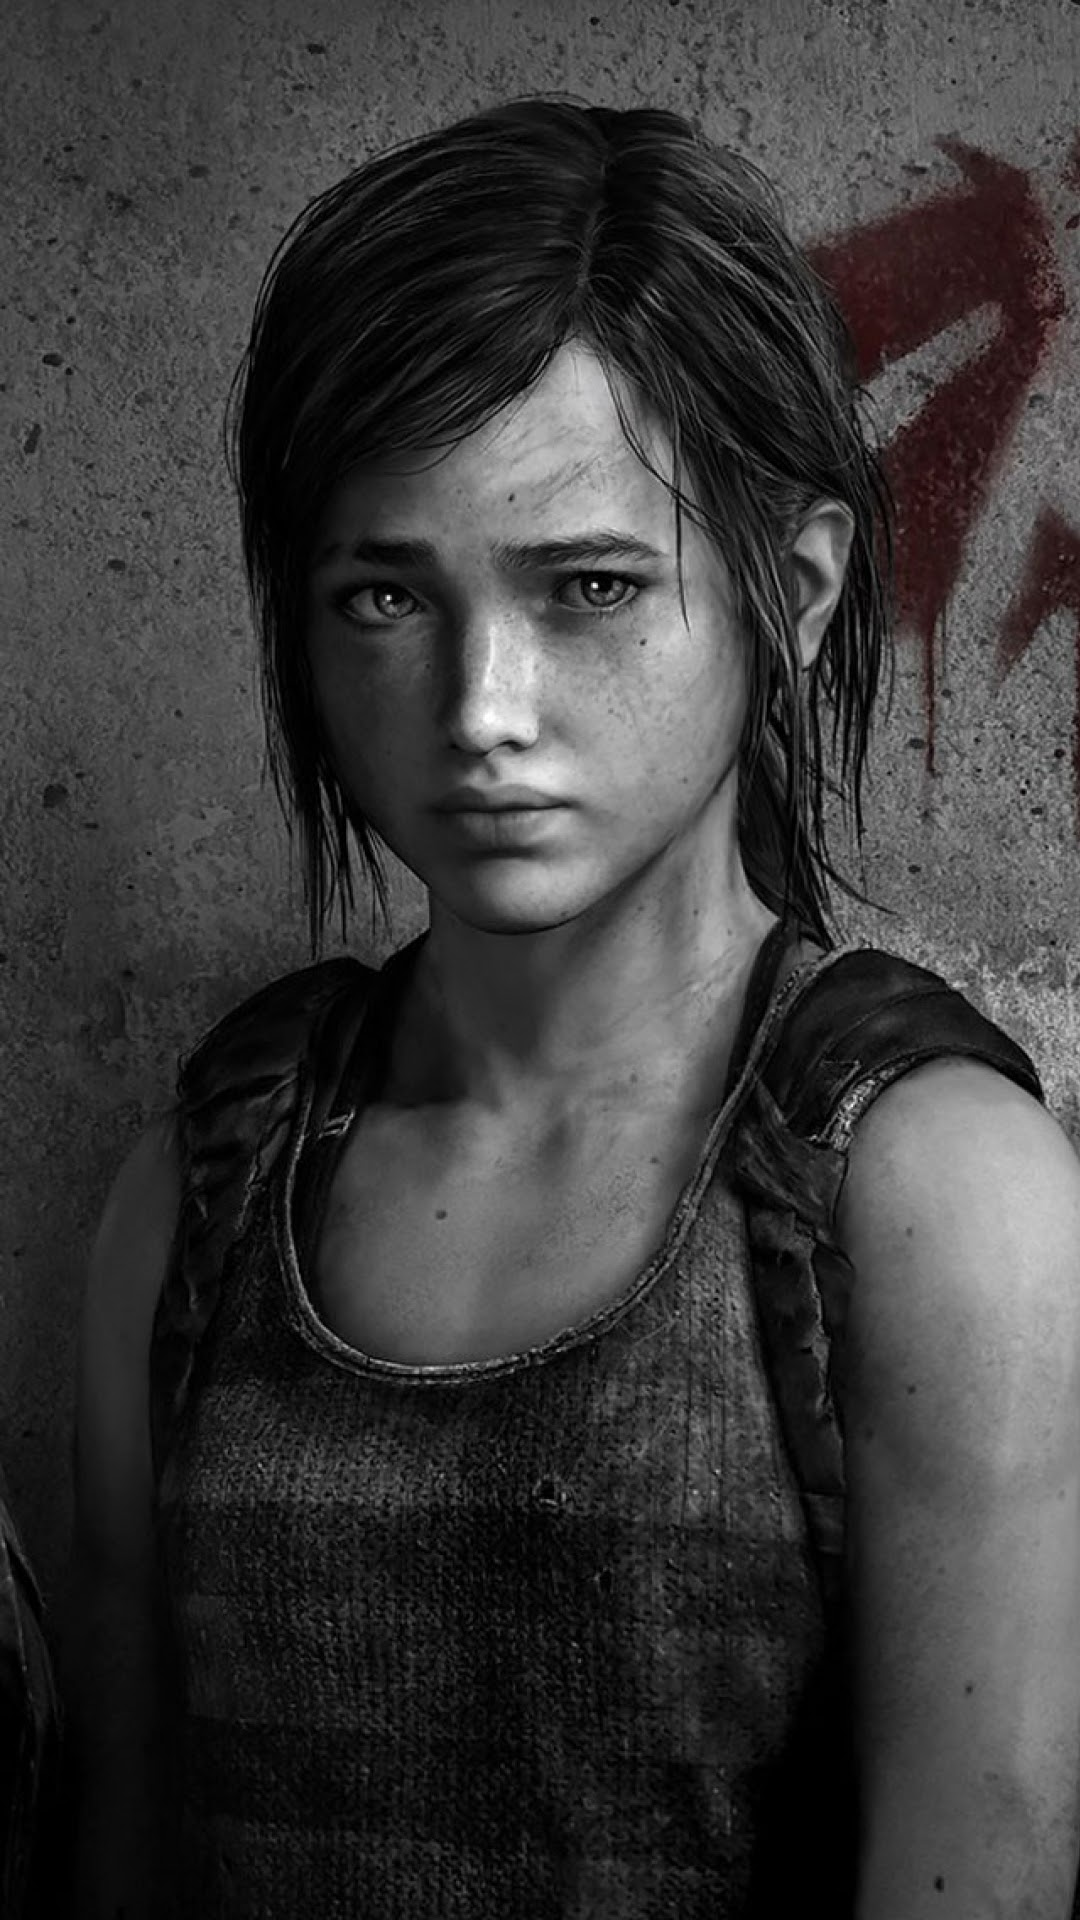 Galaxy note hd wallpapers the last of us left behind galaxy note hd wallpaper - The last of us wallpaper ...